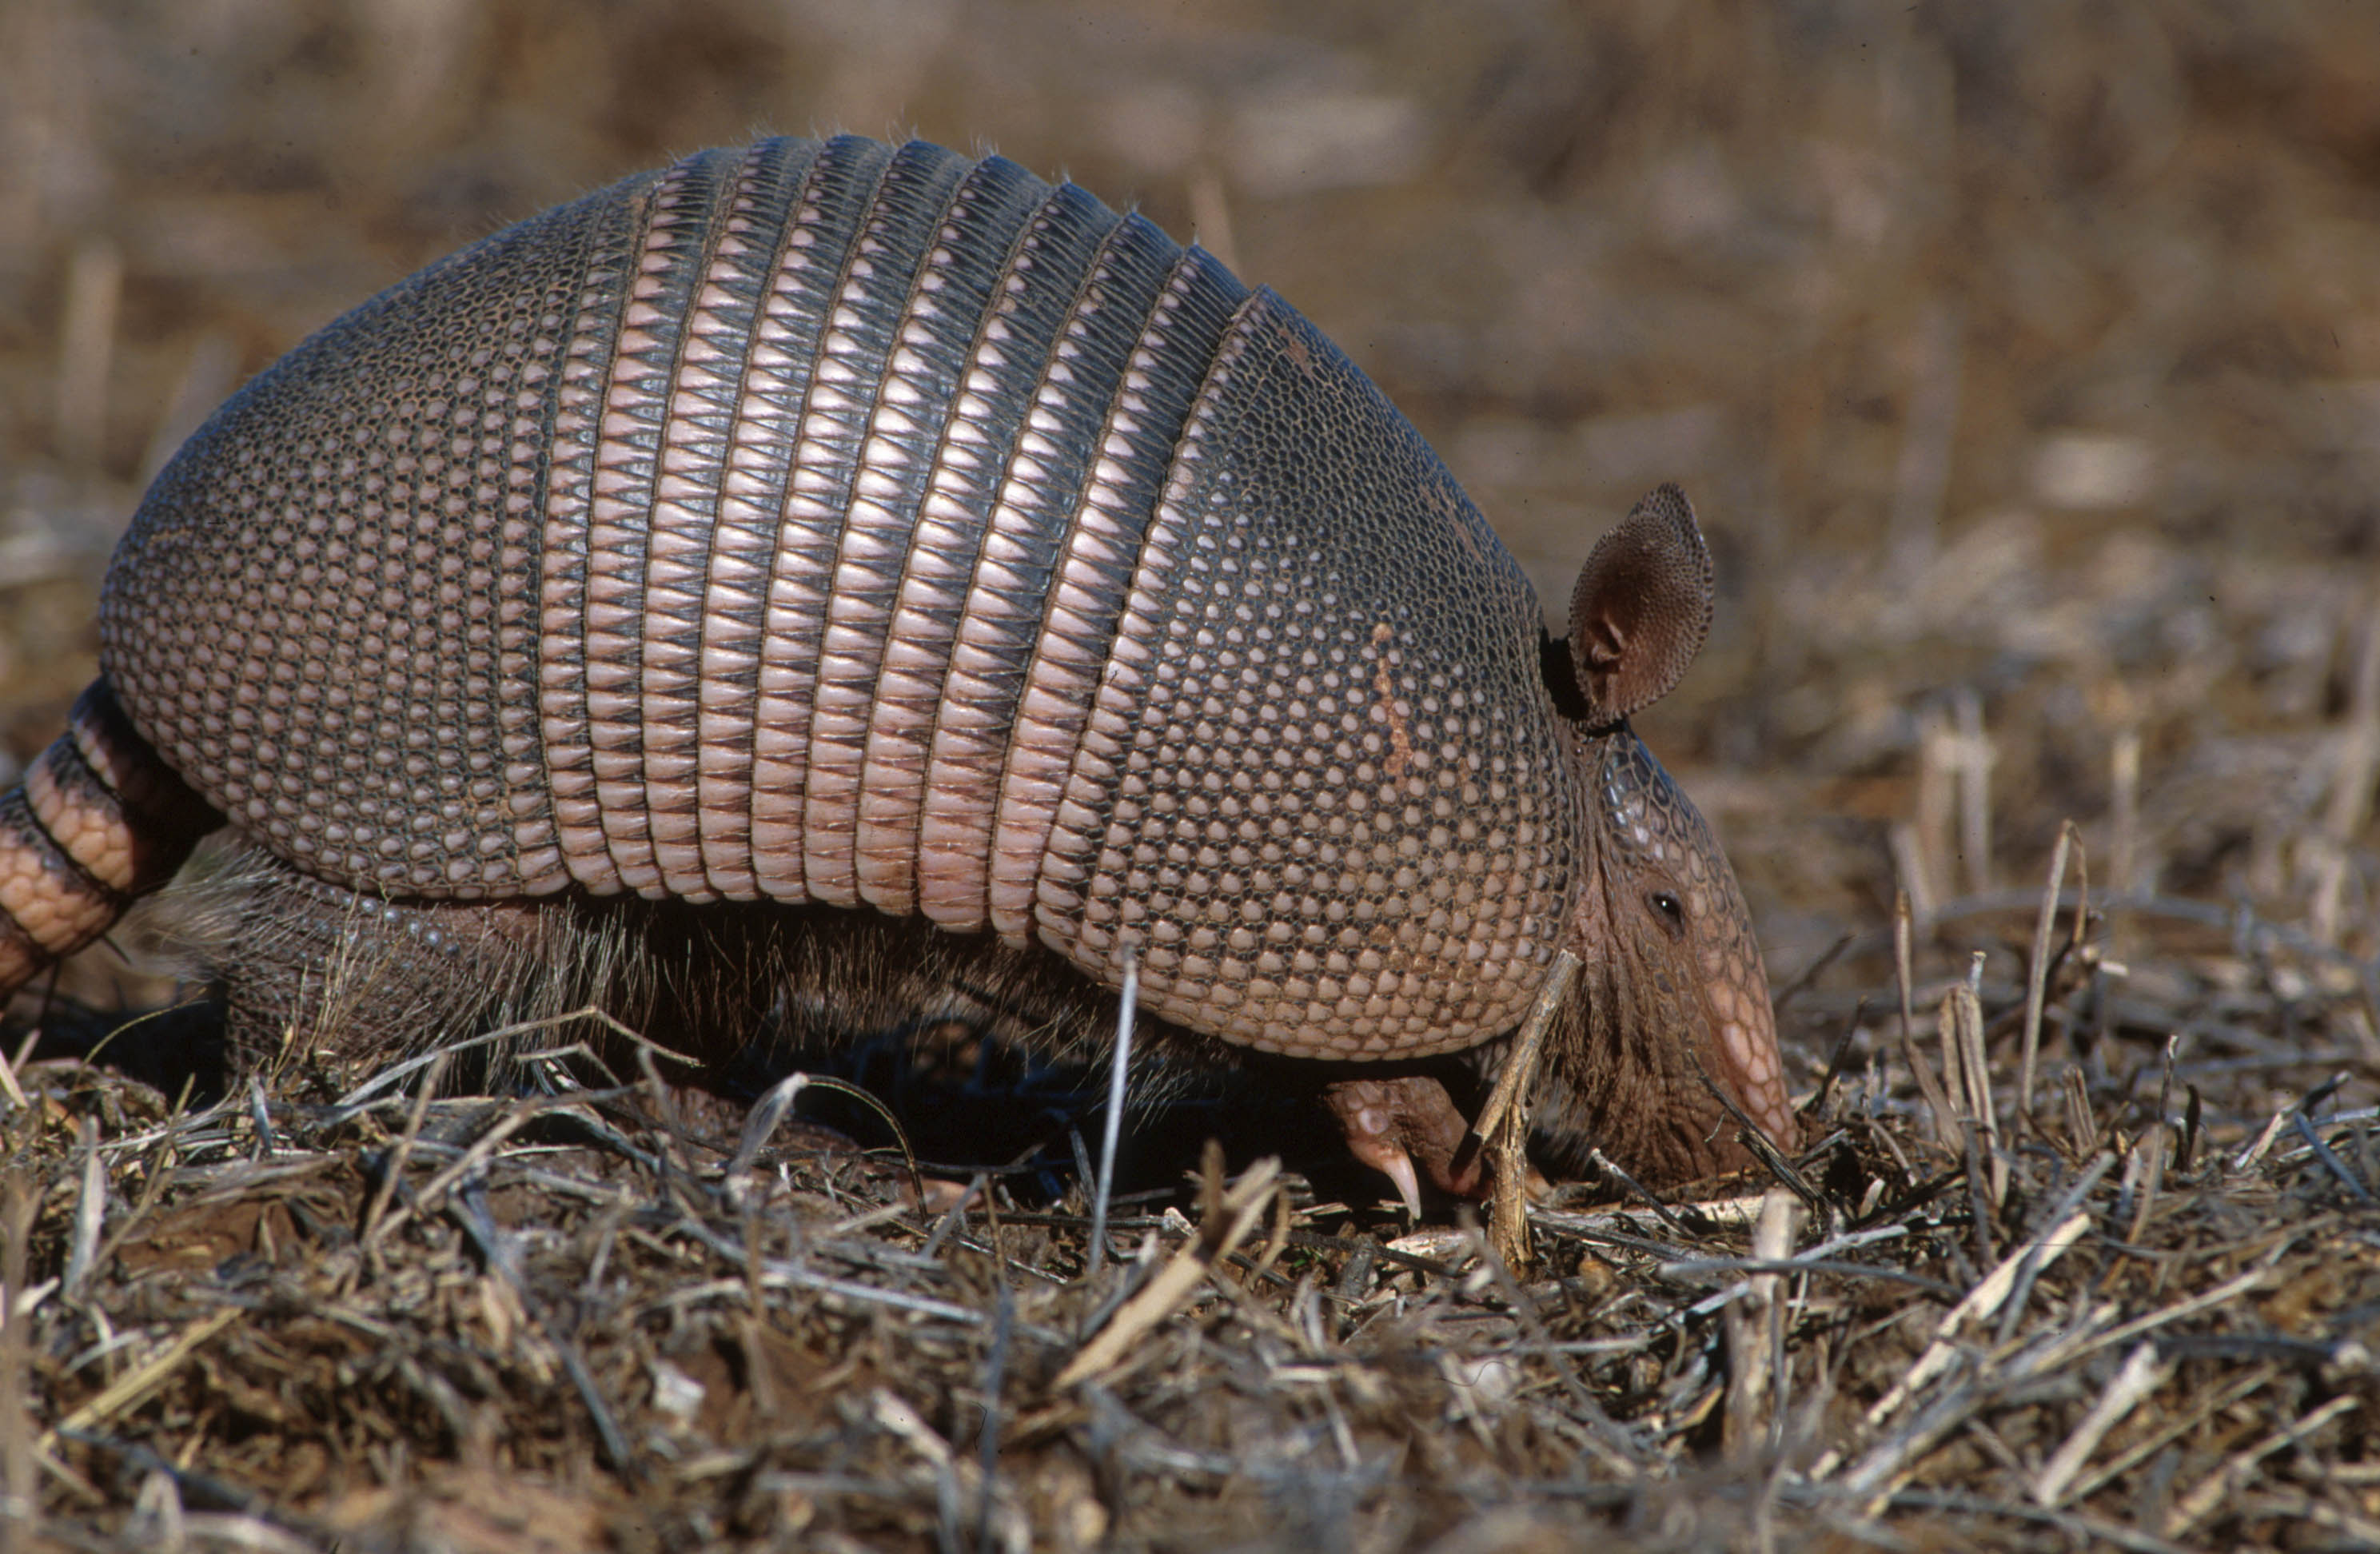 armadillo outdoor alabama